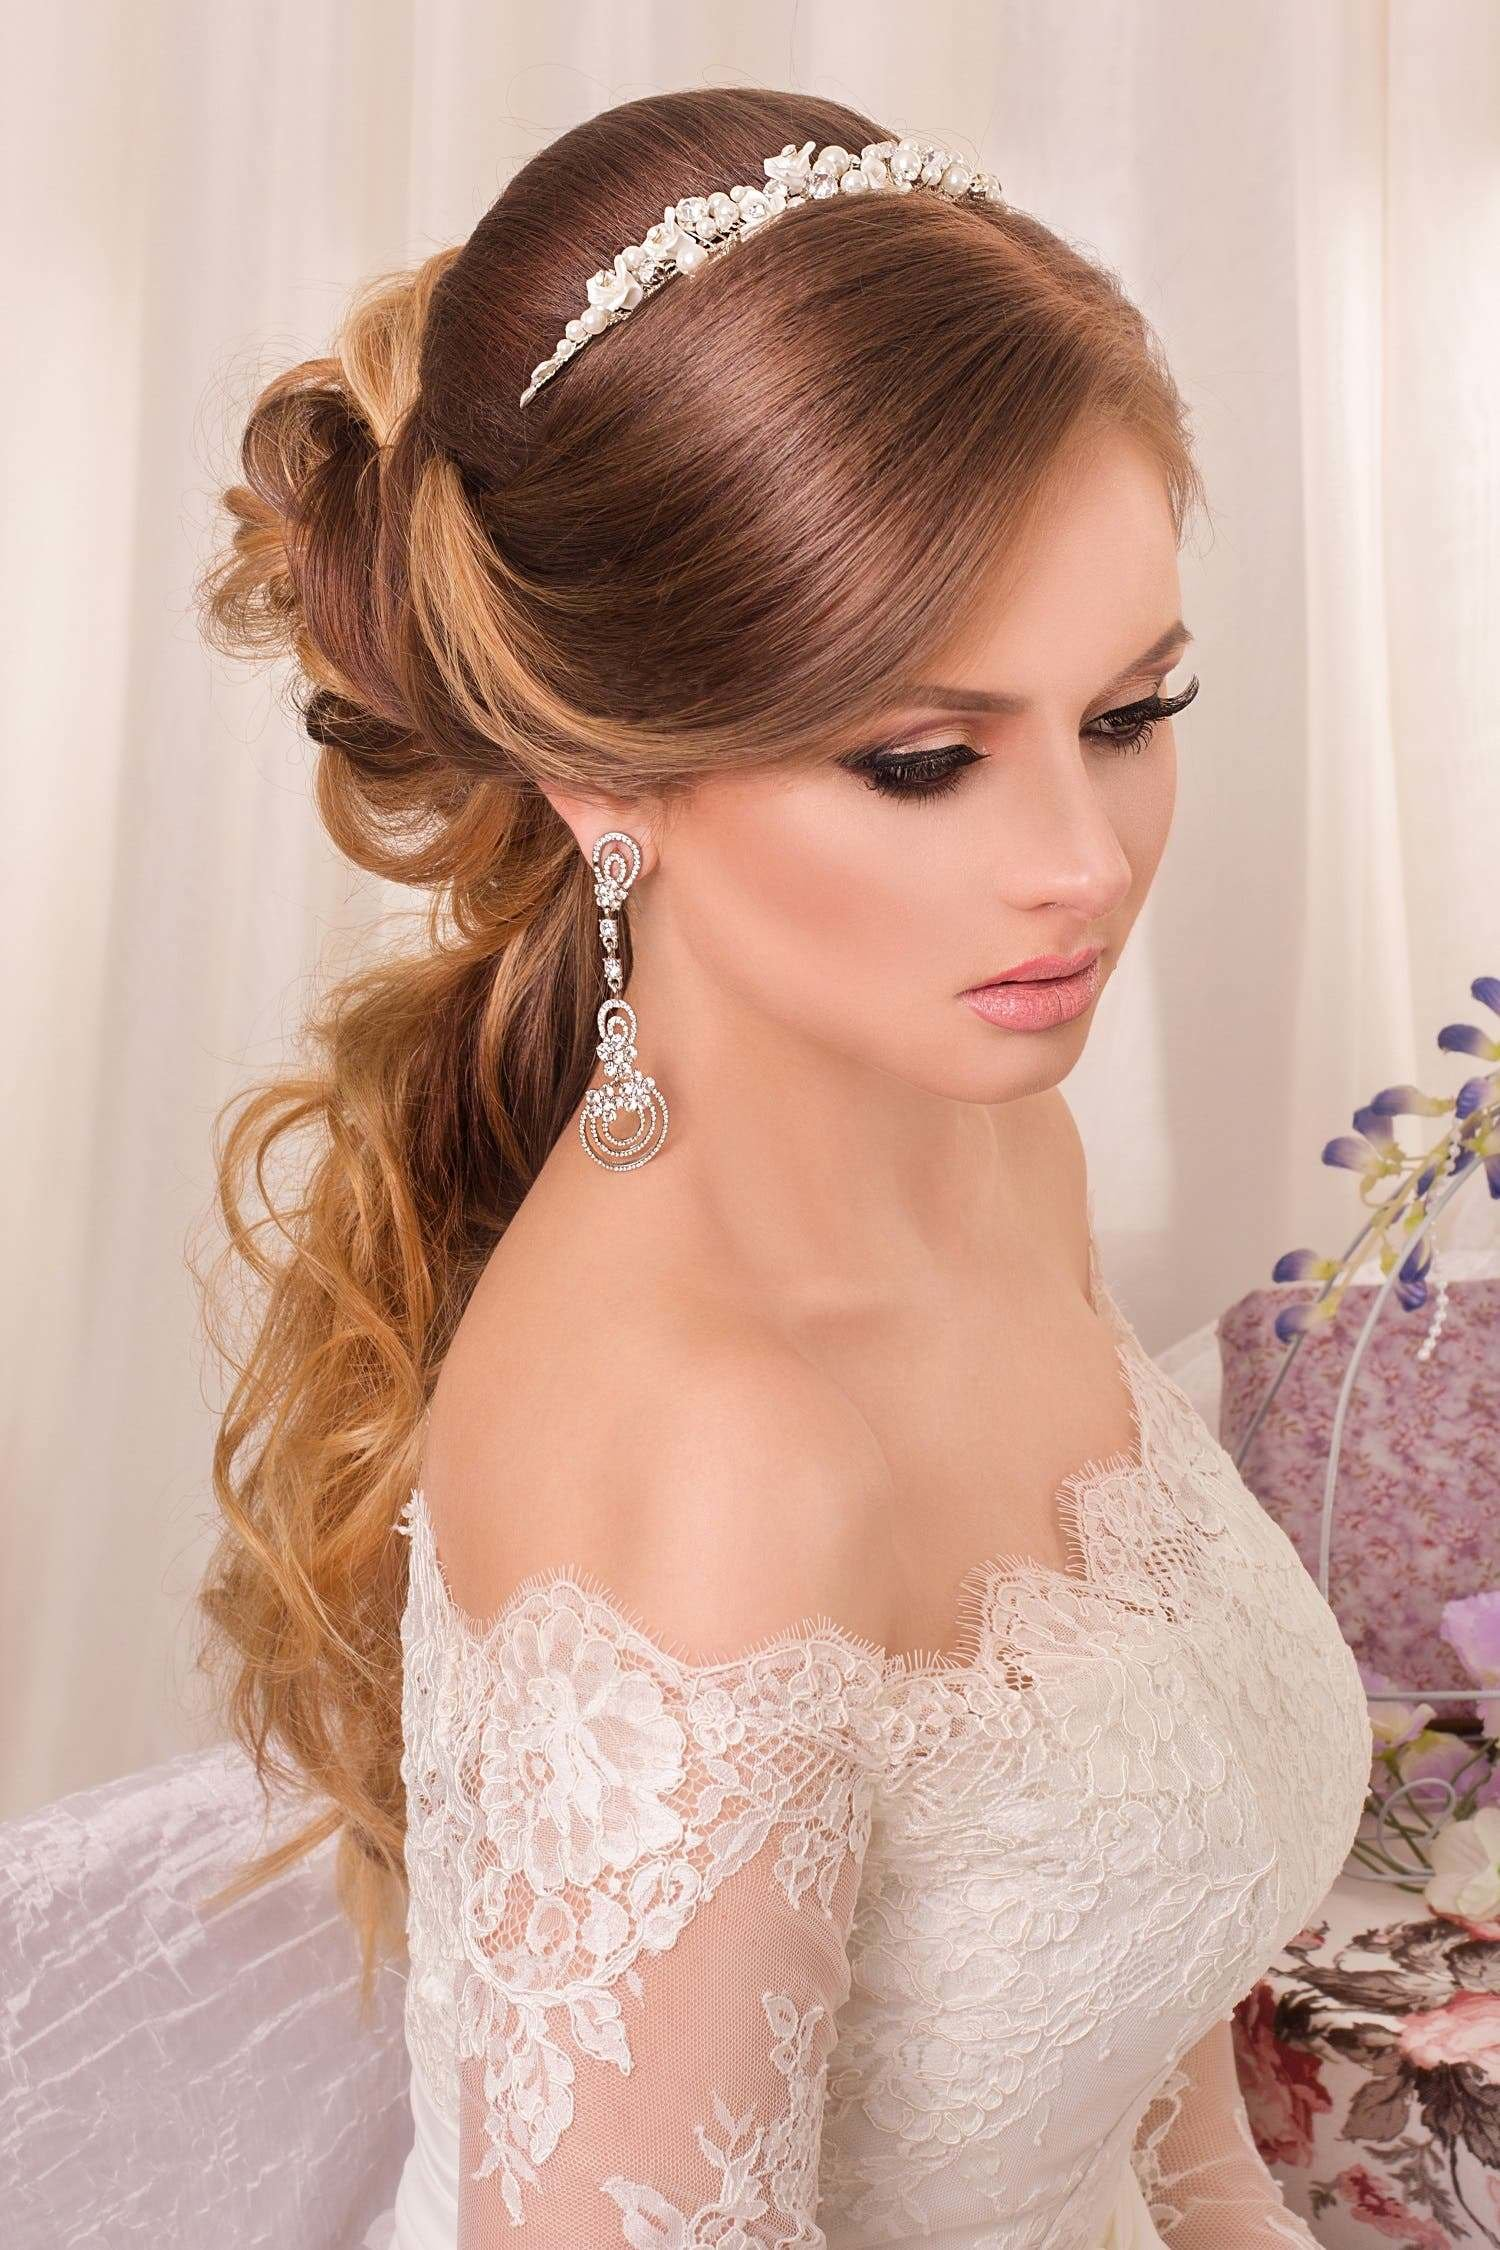 New Choosing The Perfect Hairstyle To Match Your Wedding Dress Ideas With Pictures